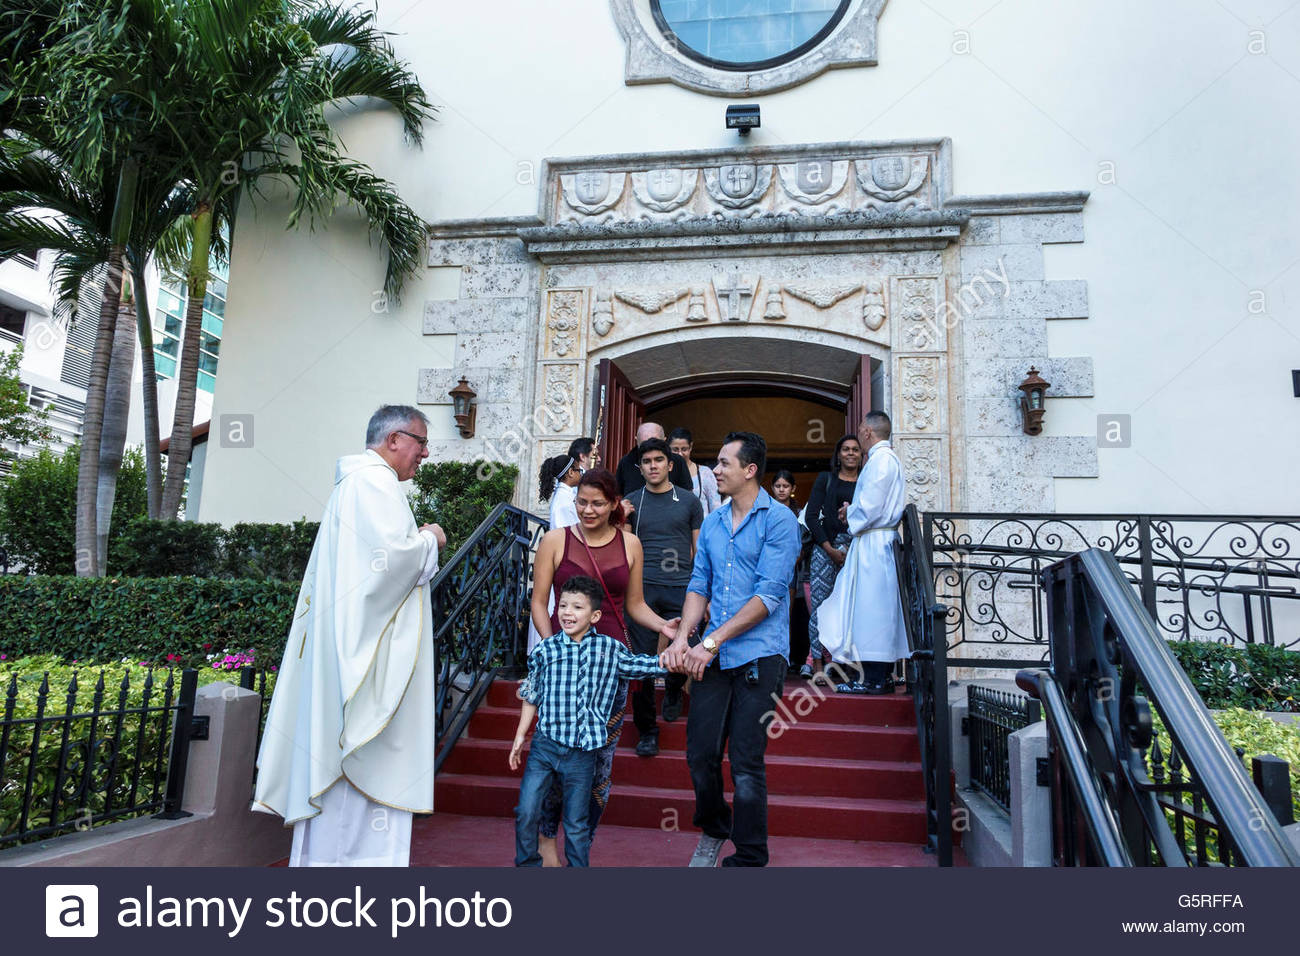 Miami Florida Beach St. Francis De Sales Catholic Church members after service leaving Hispanic man priest greeting - Stock Image